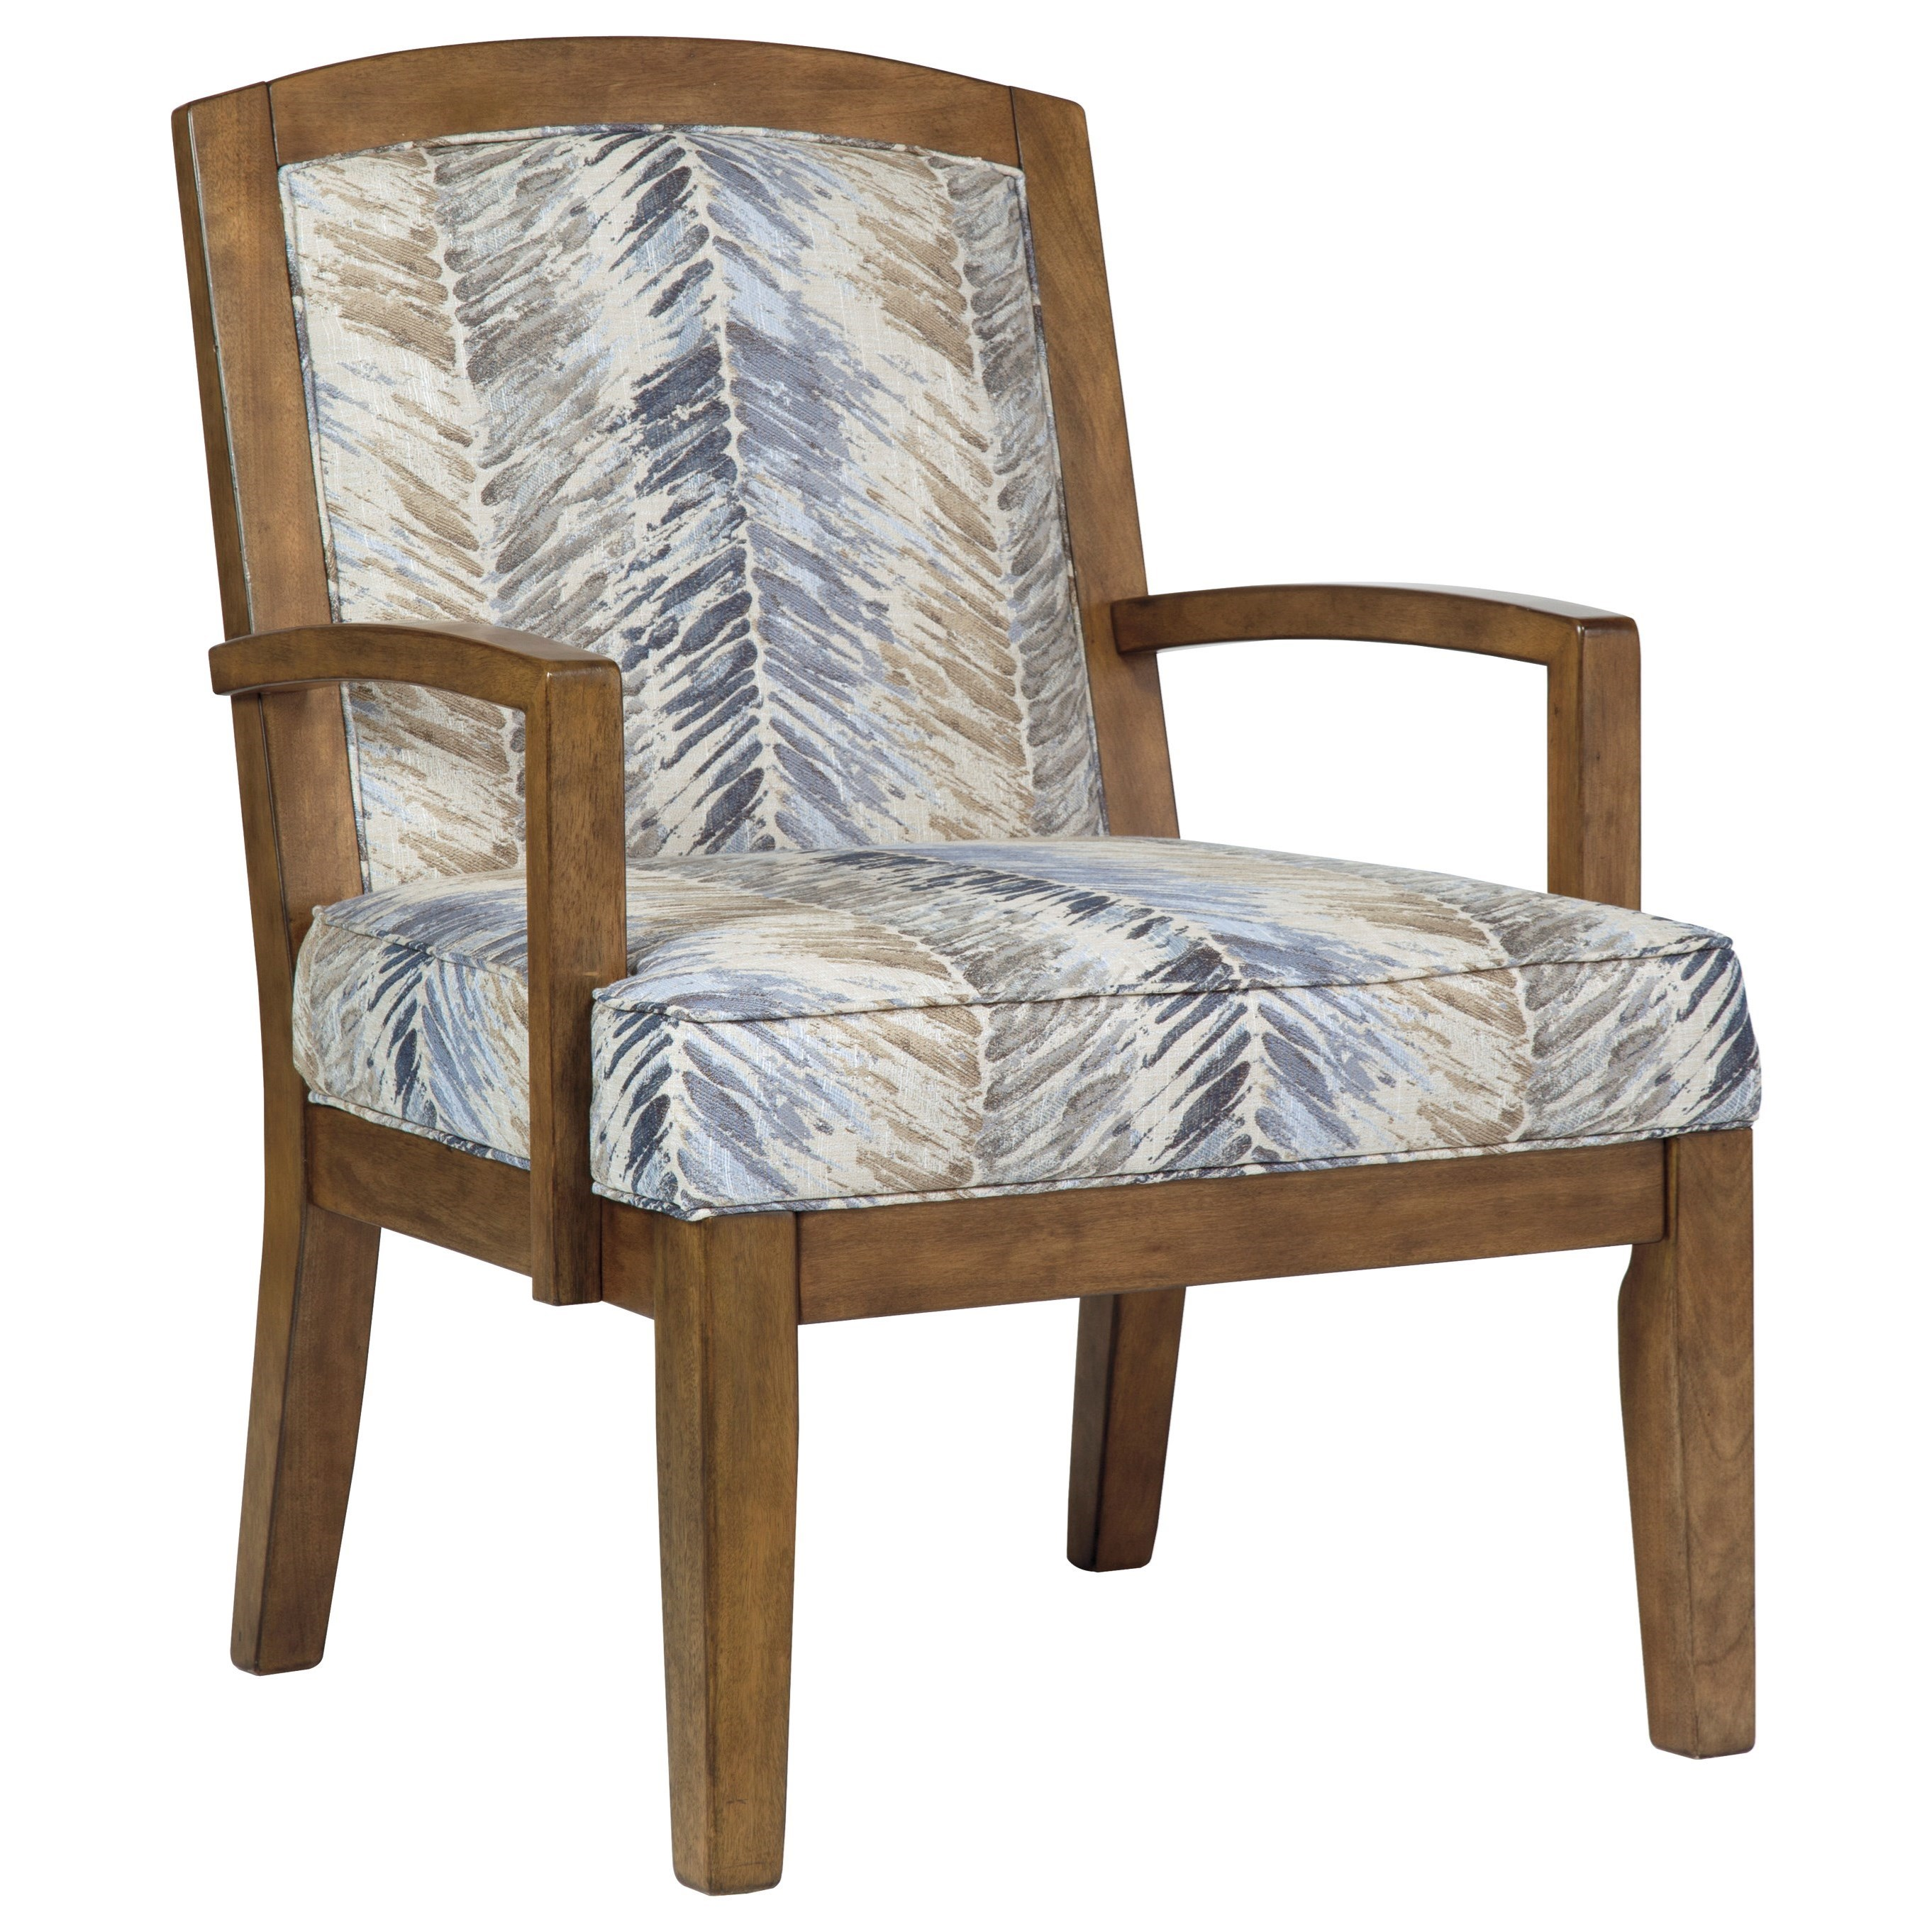 Contemporary Wood Frame Accent Chair By Benchcraft Wolf